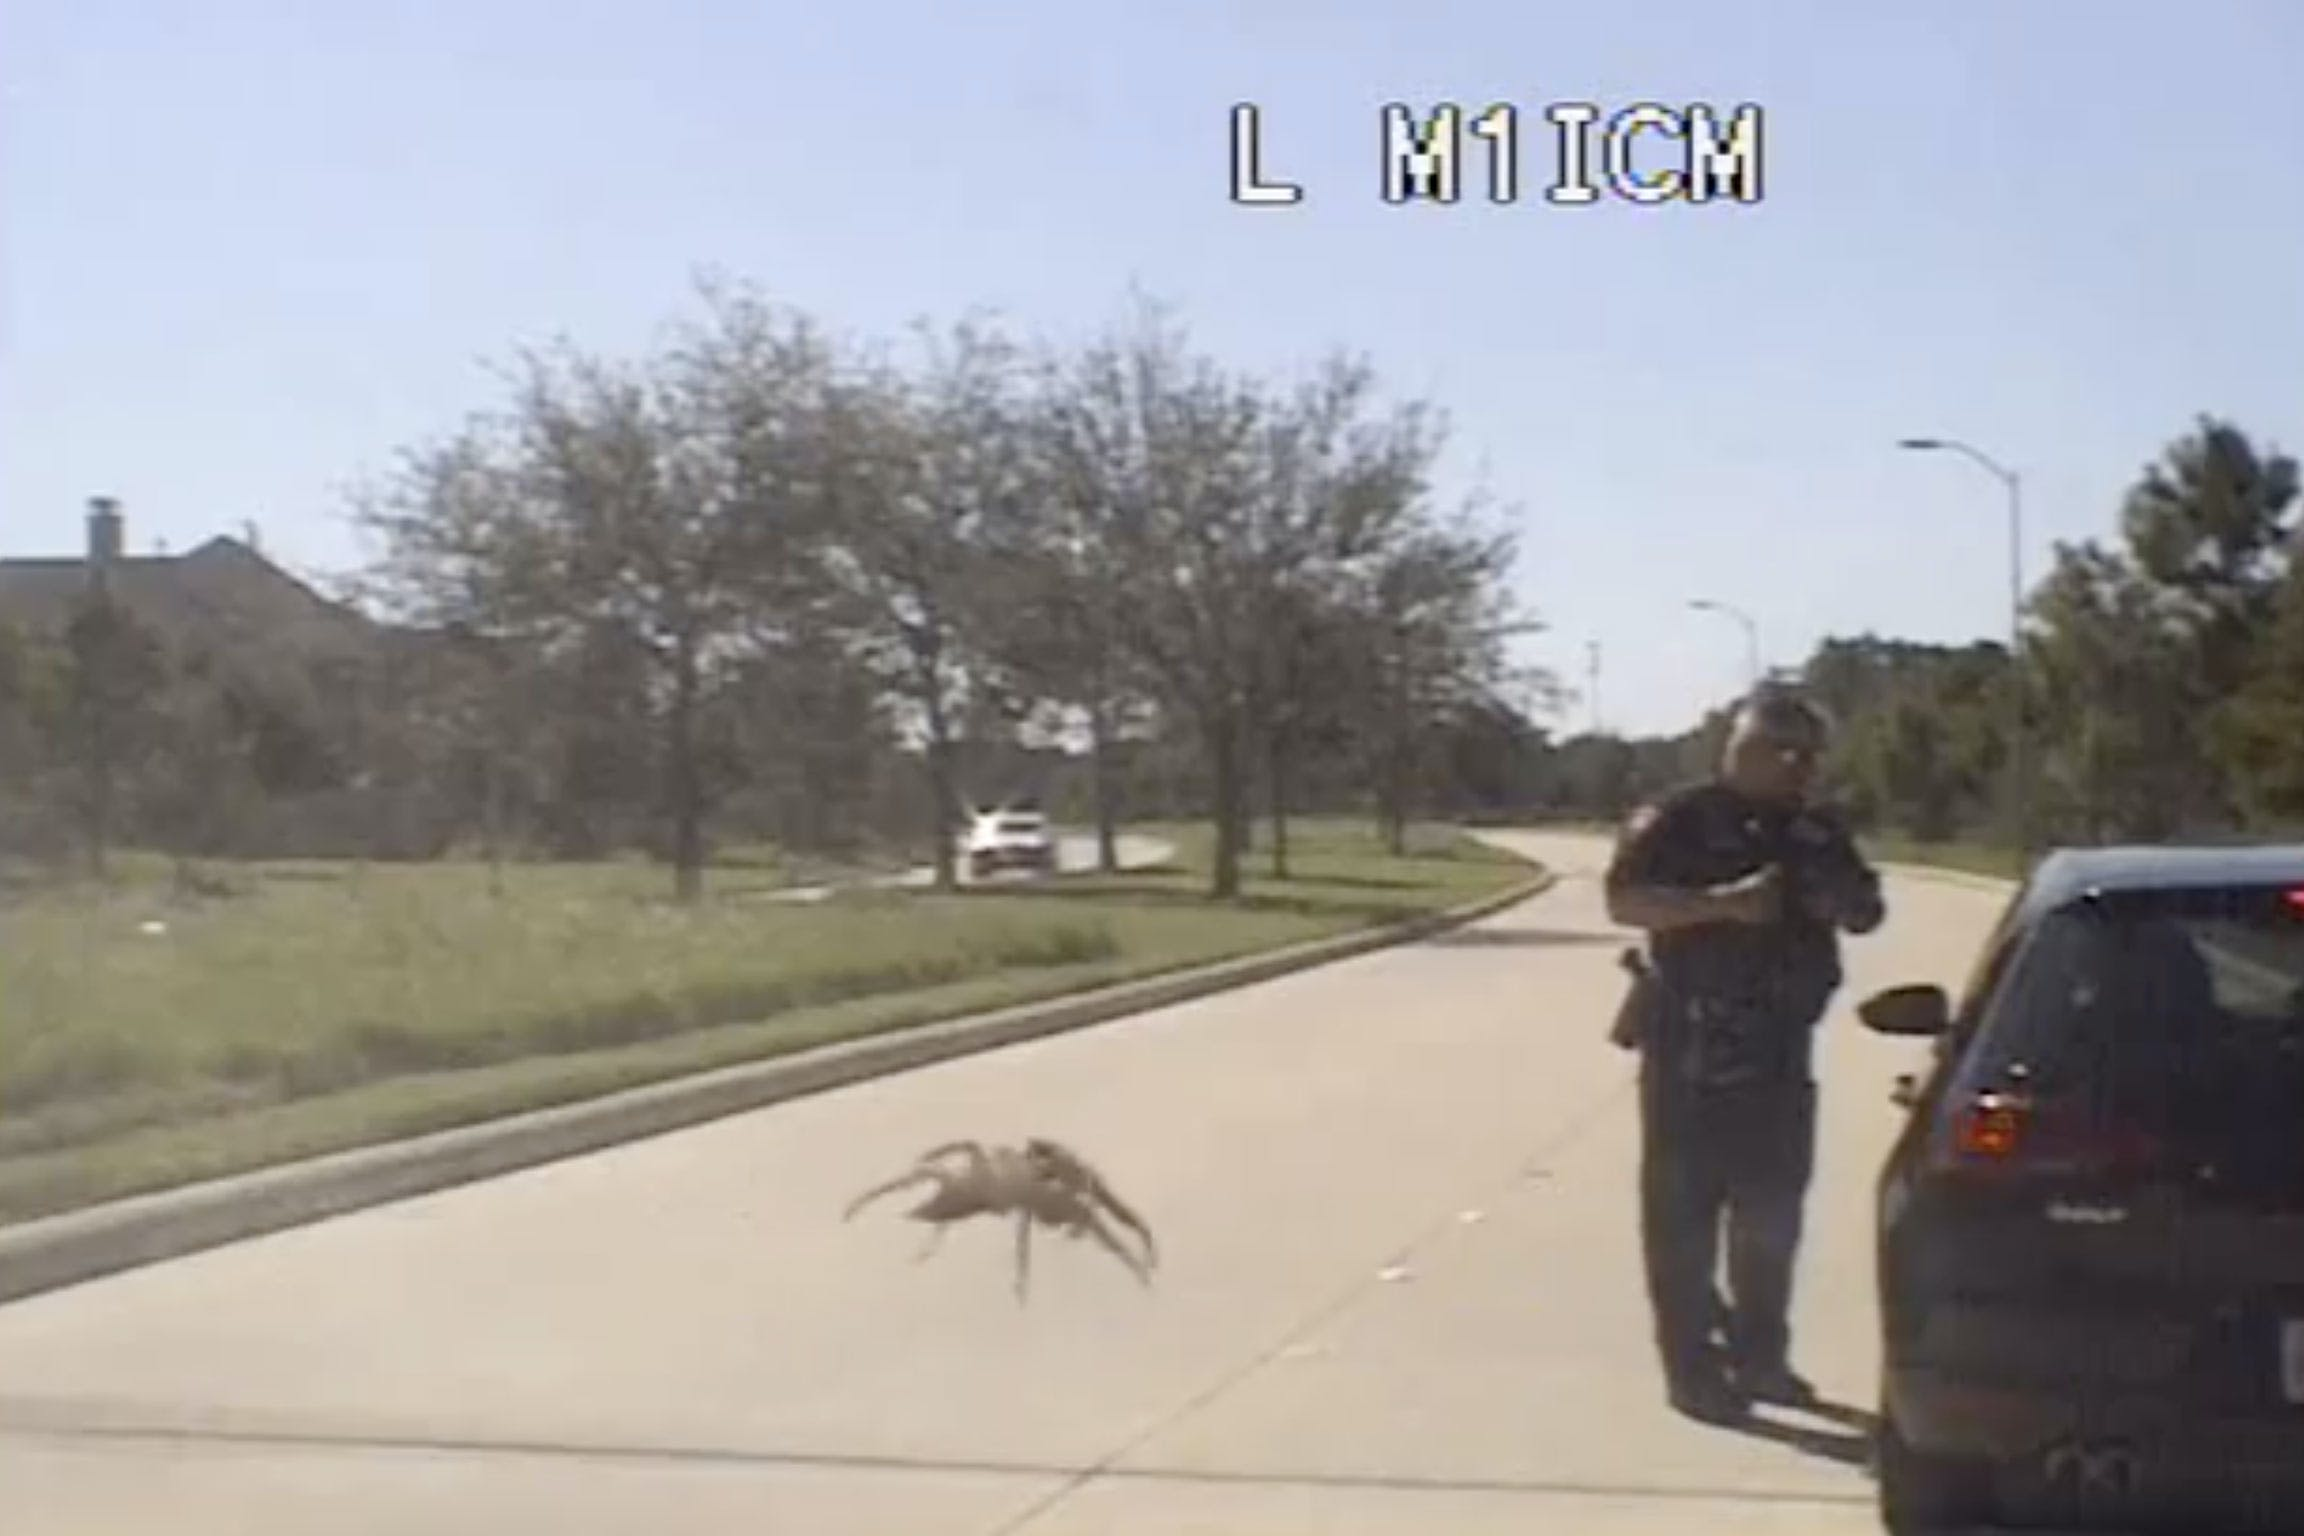 fulshear-texas-police-big-spider-on-windshield